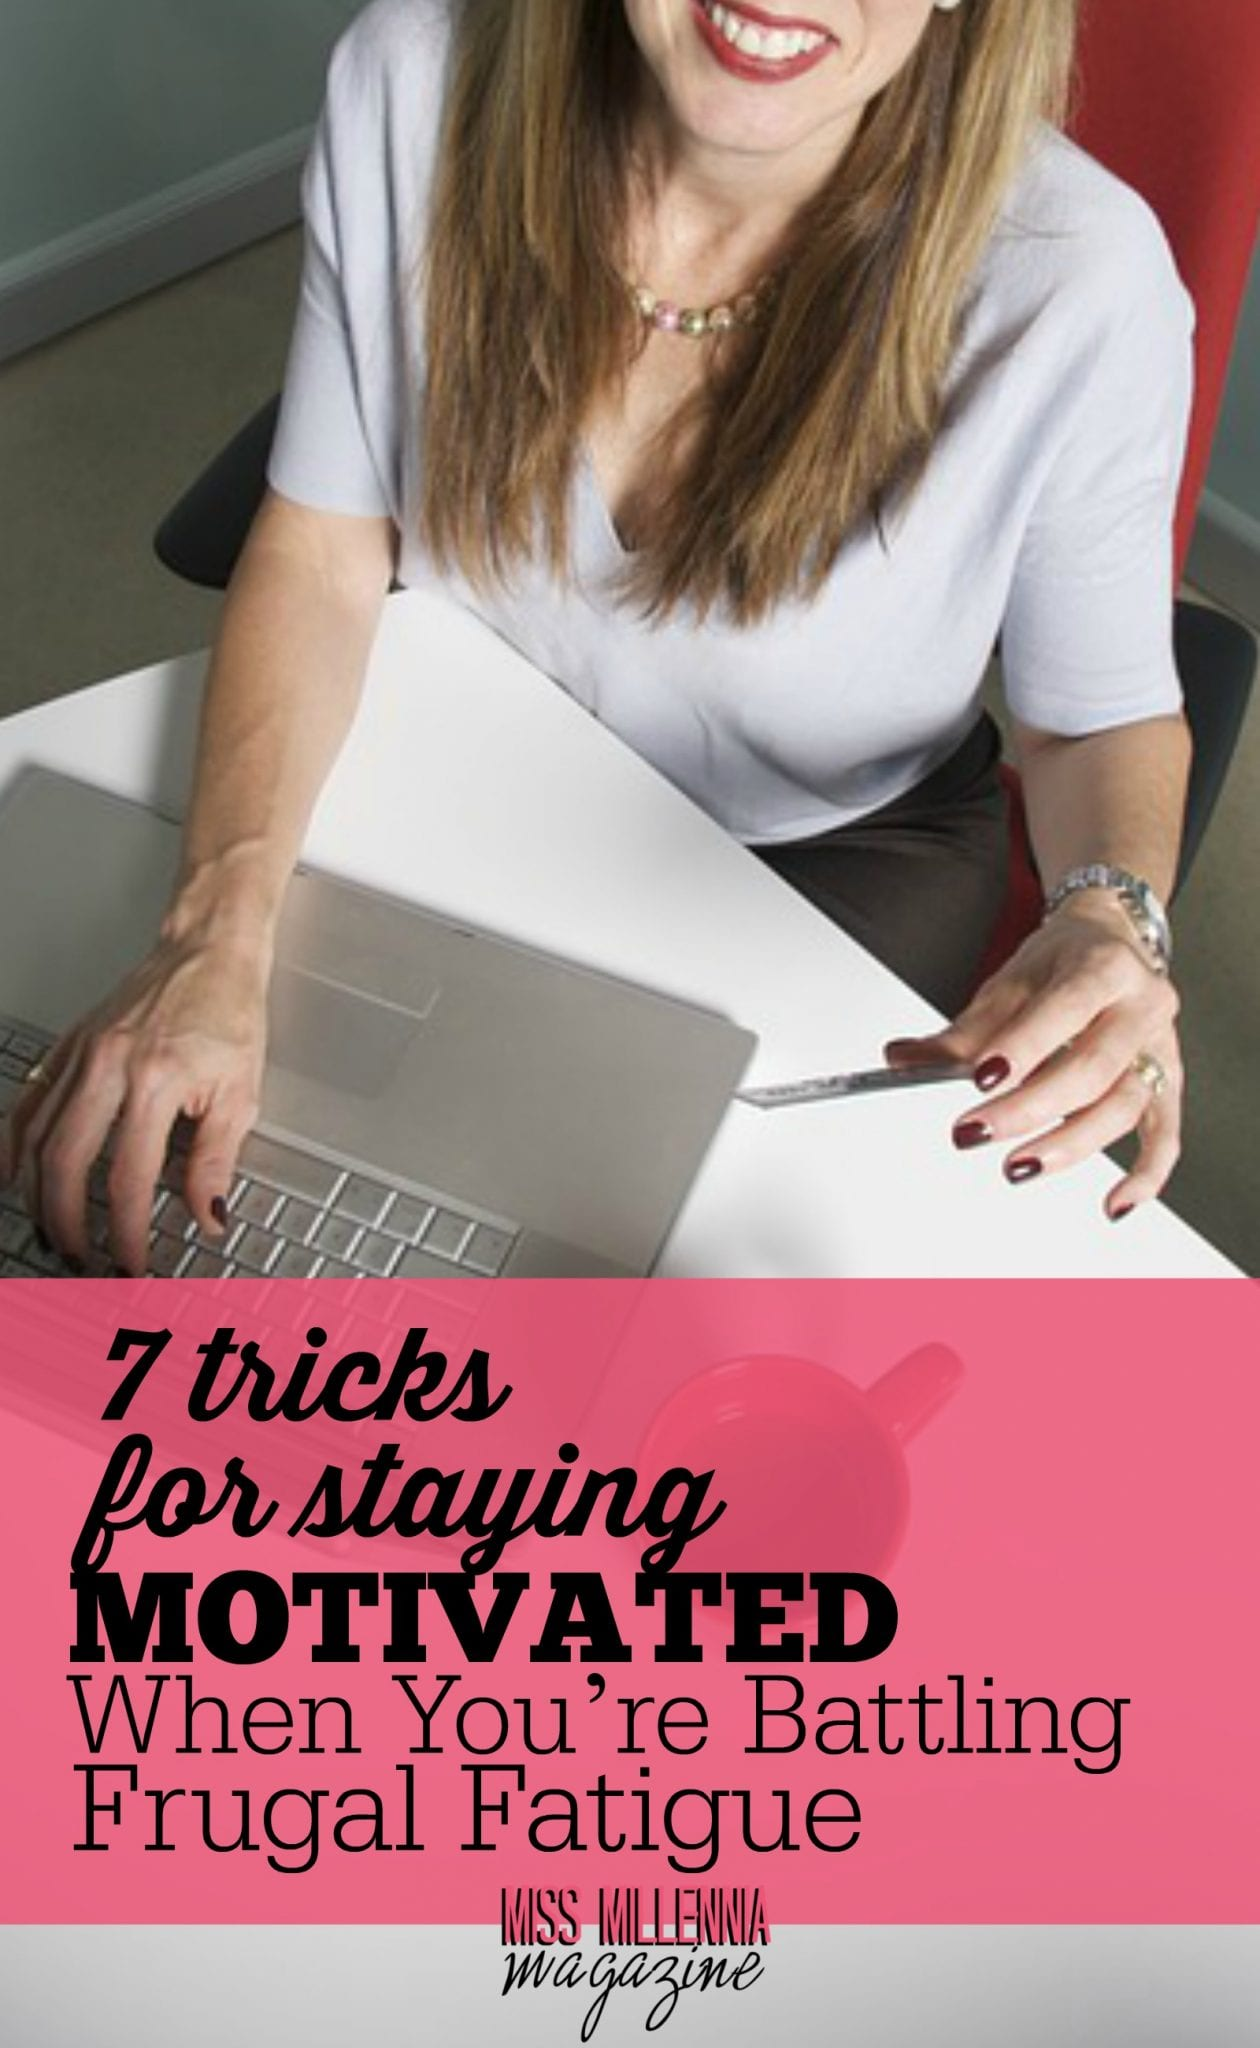 Frugal fatigue is when you end up spending your money because you're tired of saving money. Here are ways to be motivated even when you feel like giving up.